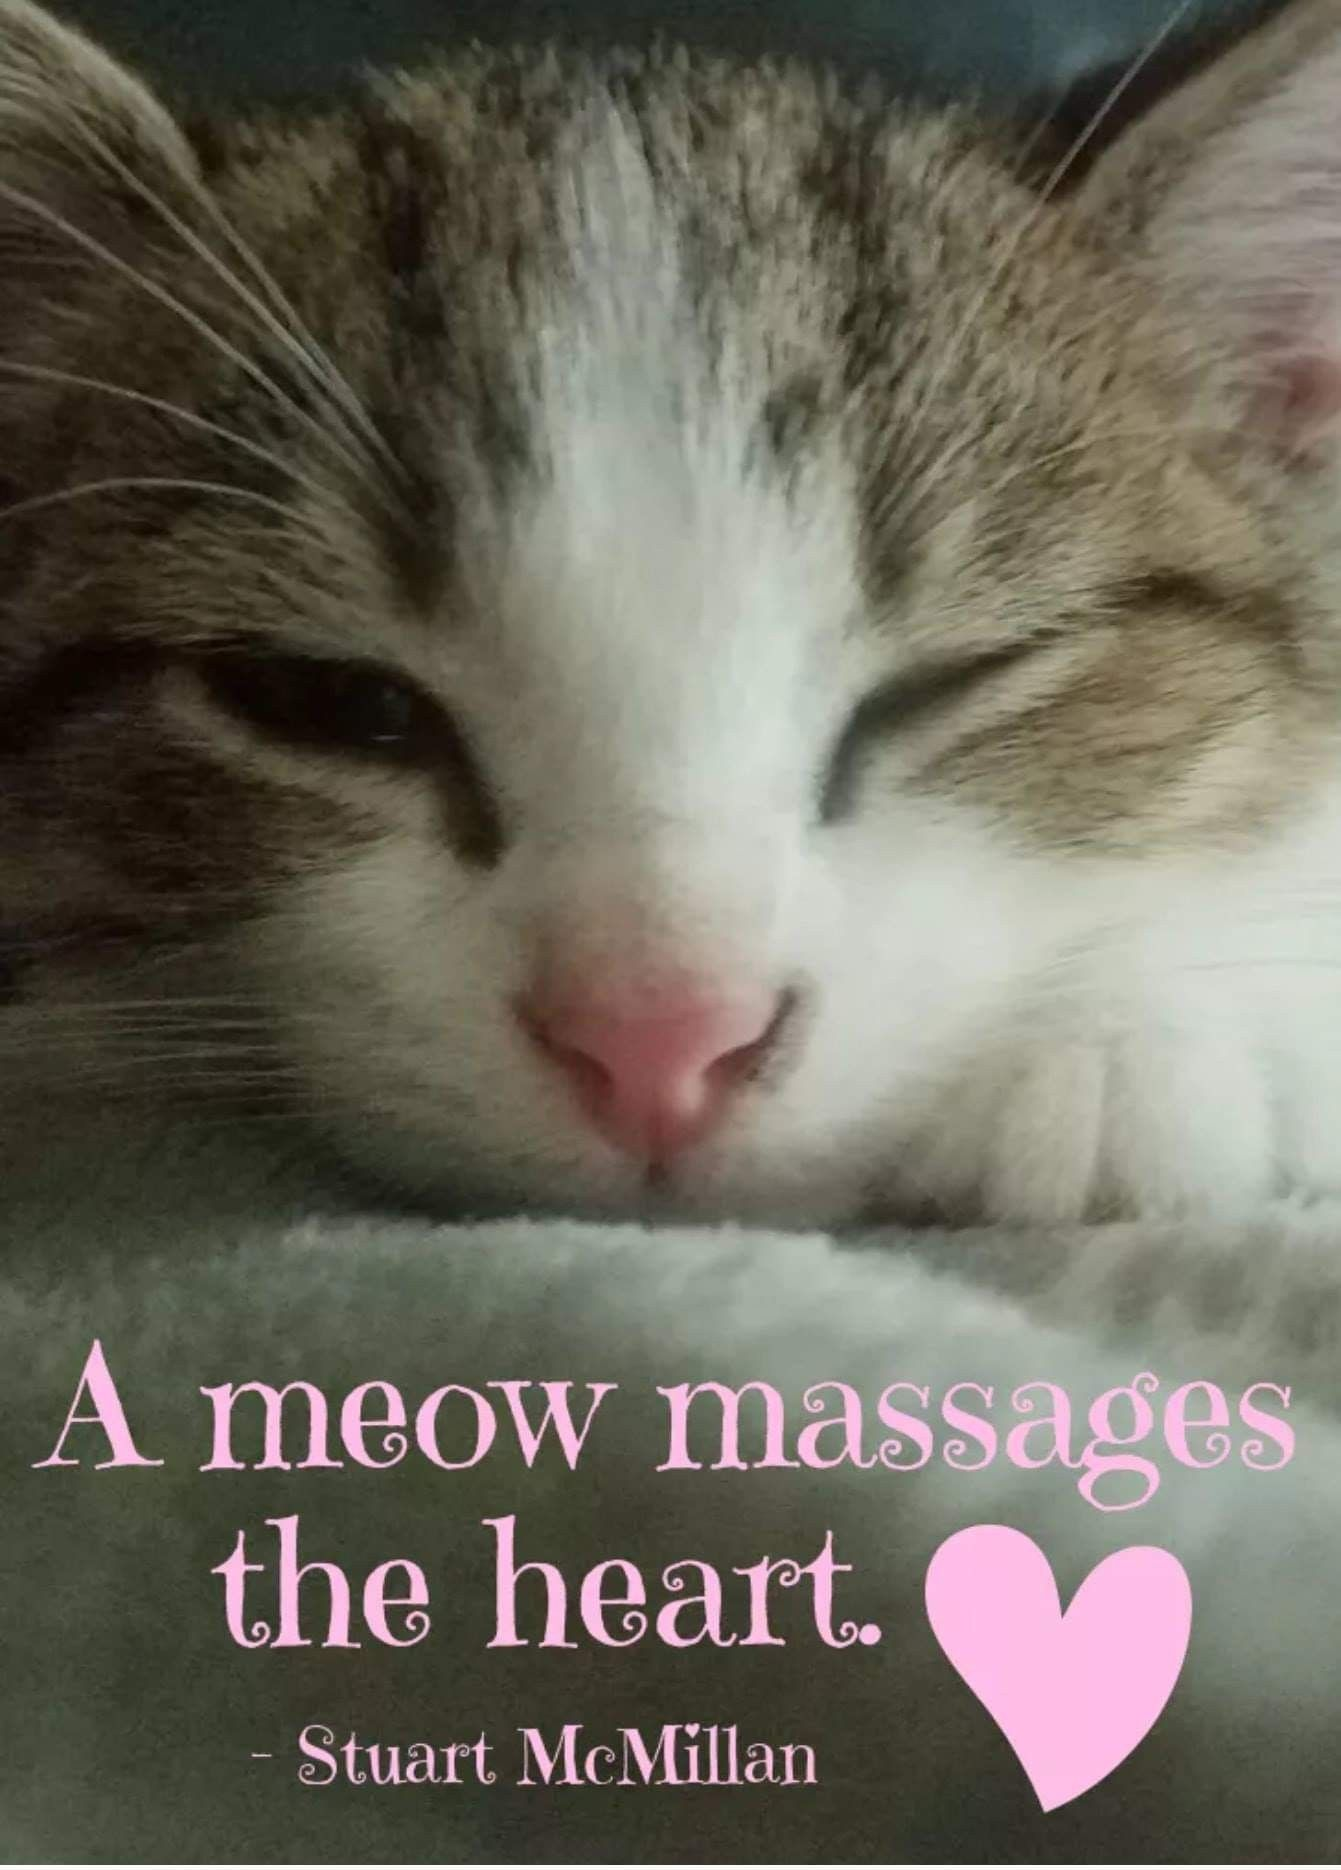 Pin By Cindy Bentley On Amazing Purrs Why Do Cats Purr Pet Insurance Reviews Cat Having Kittens